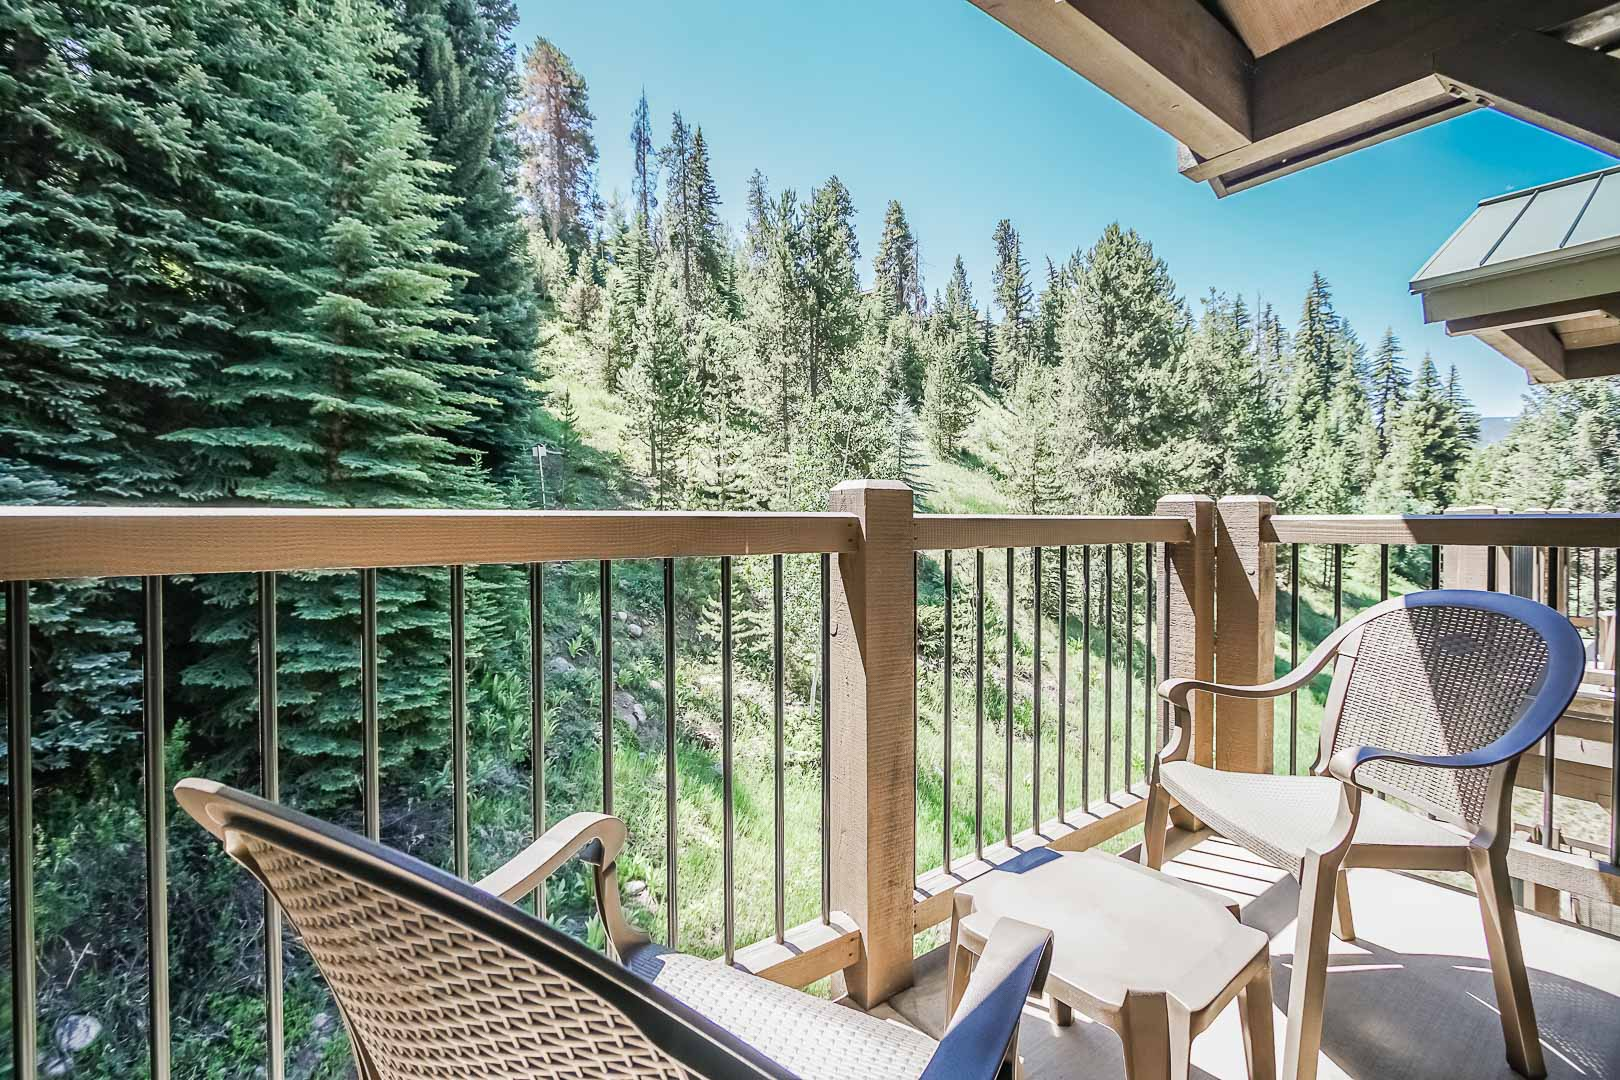 A breathtaking balcony view at VRI's Aspen at Streamside in Colorado.